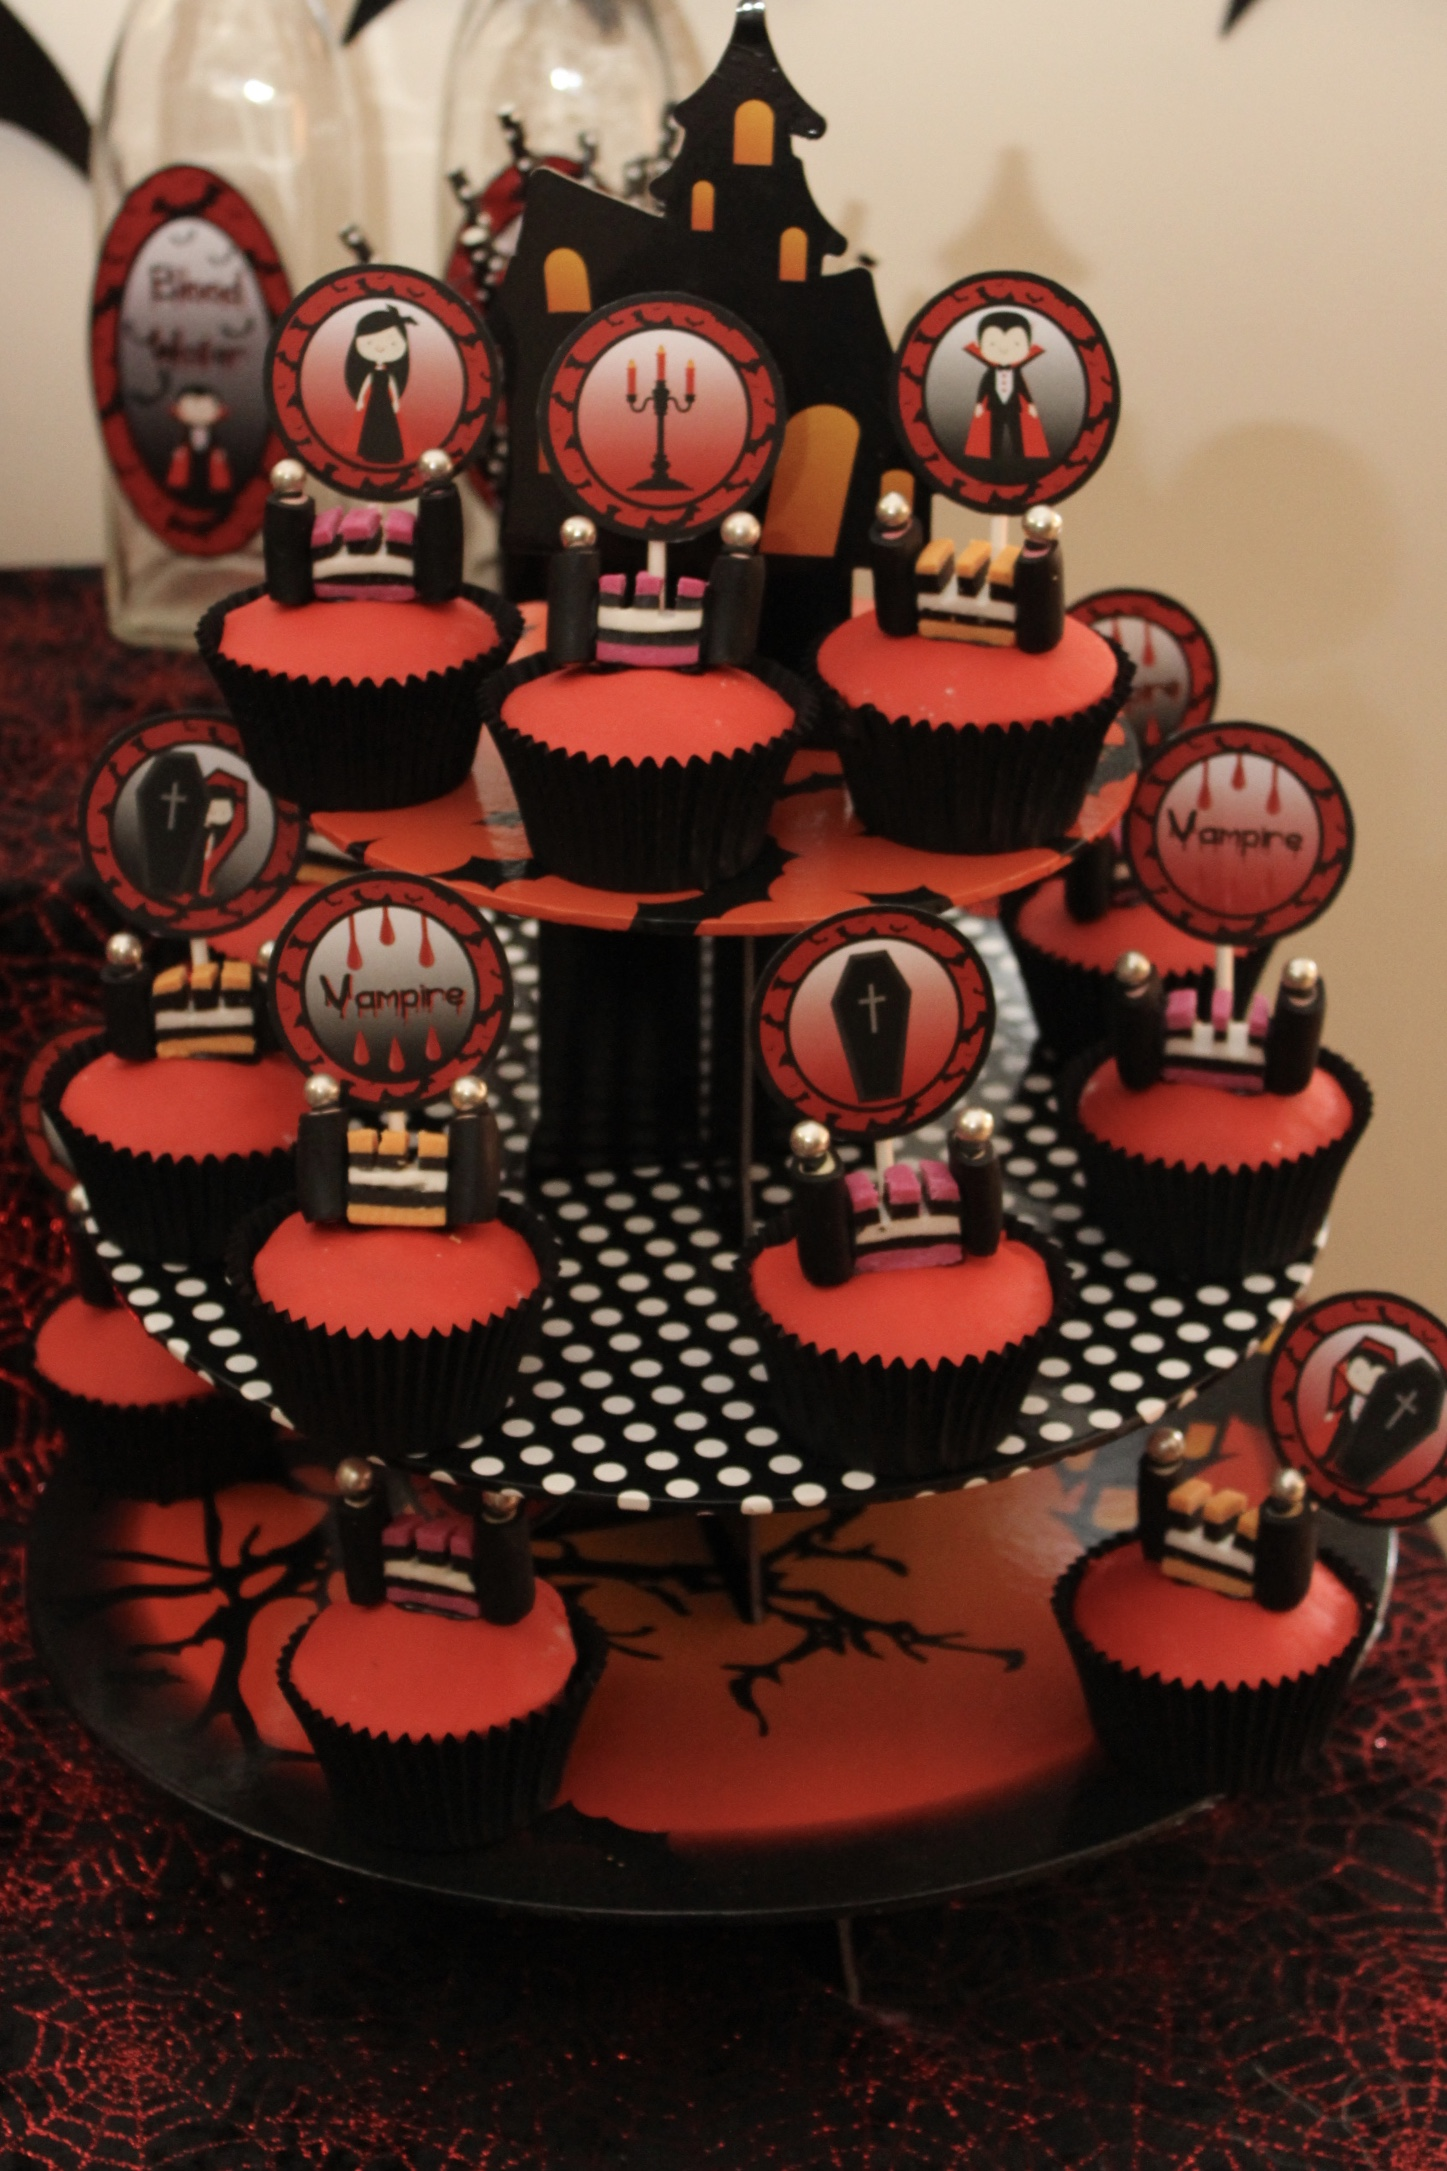 Castle Cup Cakes - Halloween Vampire Party